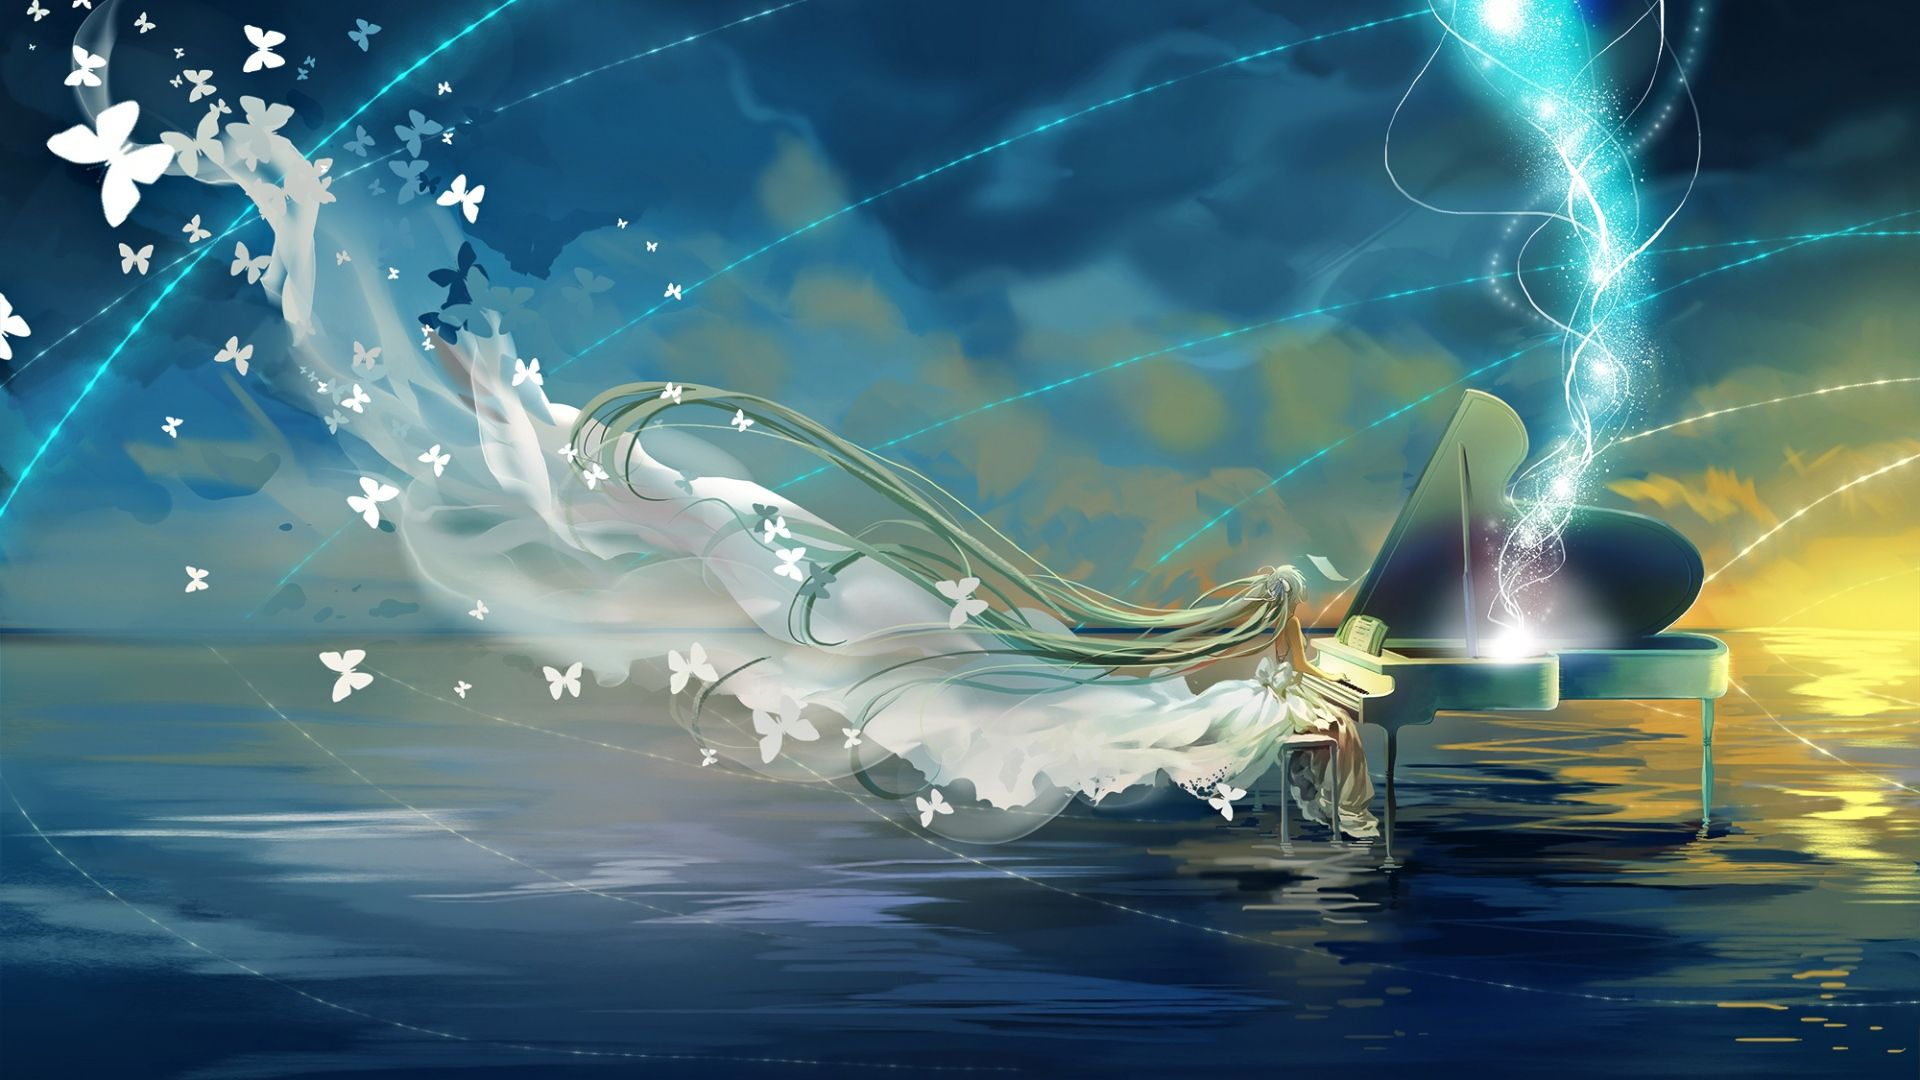 Download Wallpaper 1920x1080 Vocaloid Hatsune Miku Piano